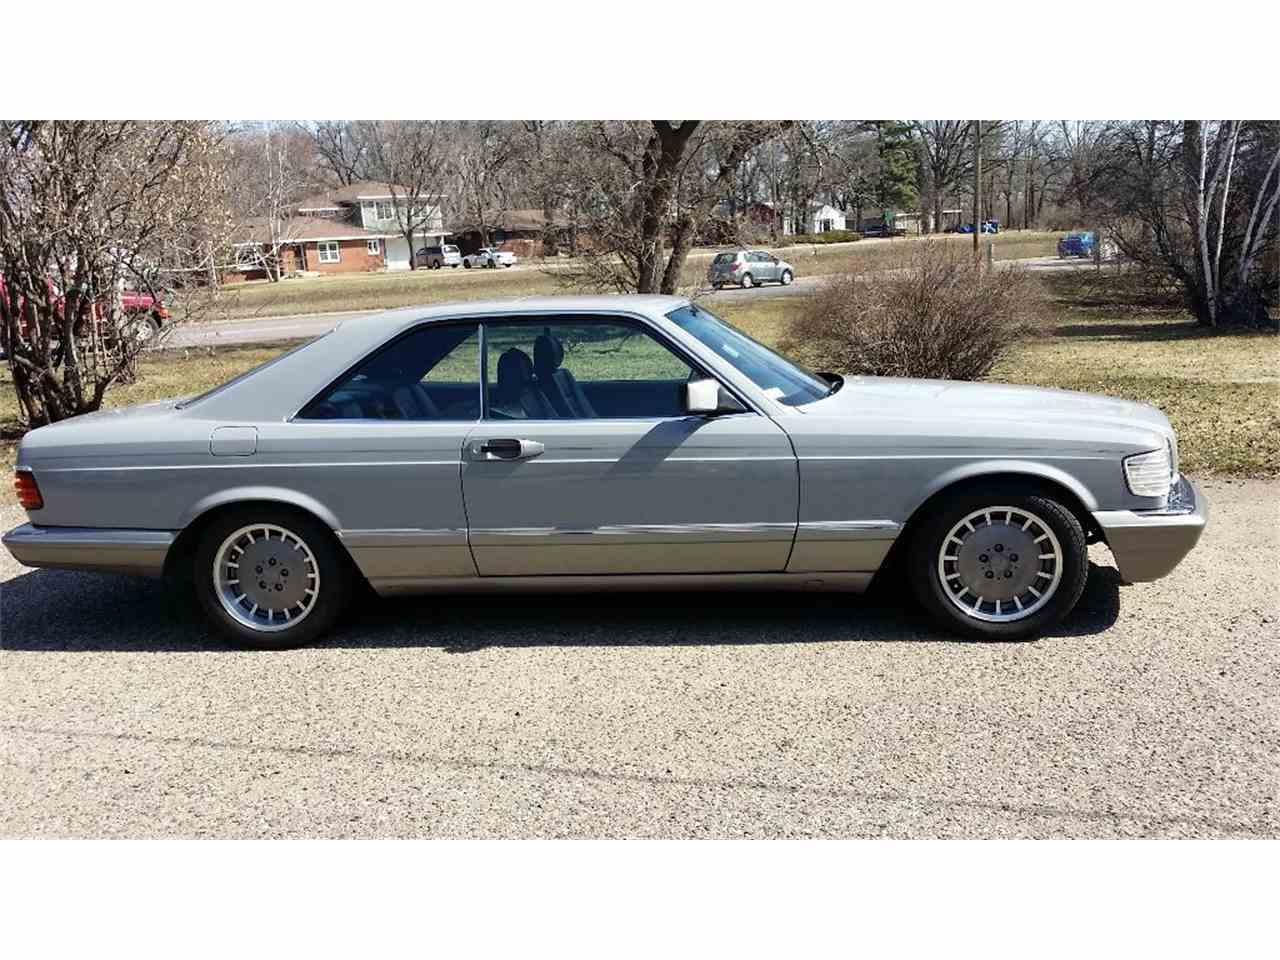 Large Picture of 1987 Mercedes-Benz 560SEC located in Annandale Minnesota - $13,000.00 Offered by Classic Rides and Rods - EGAK